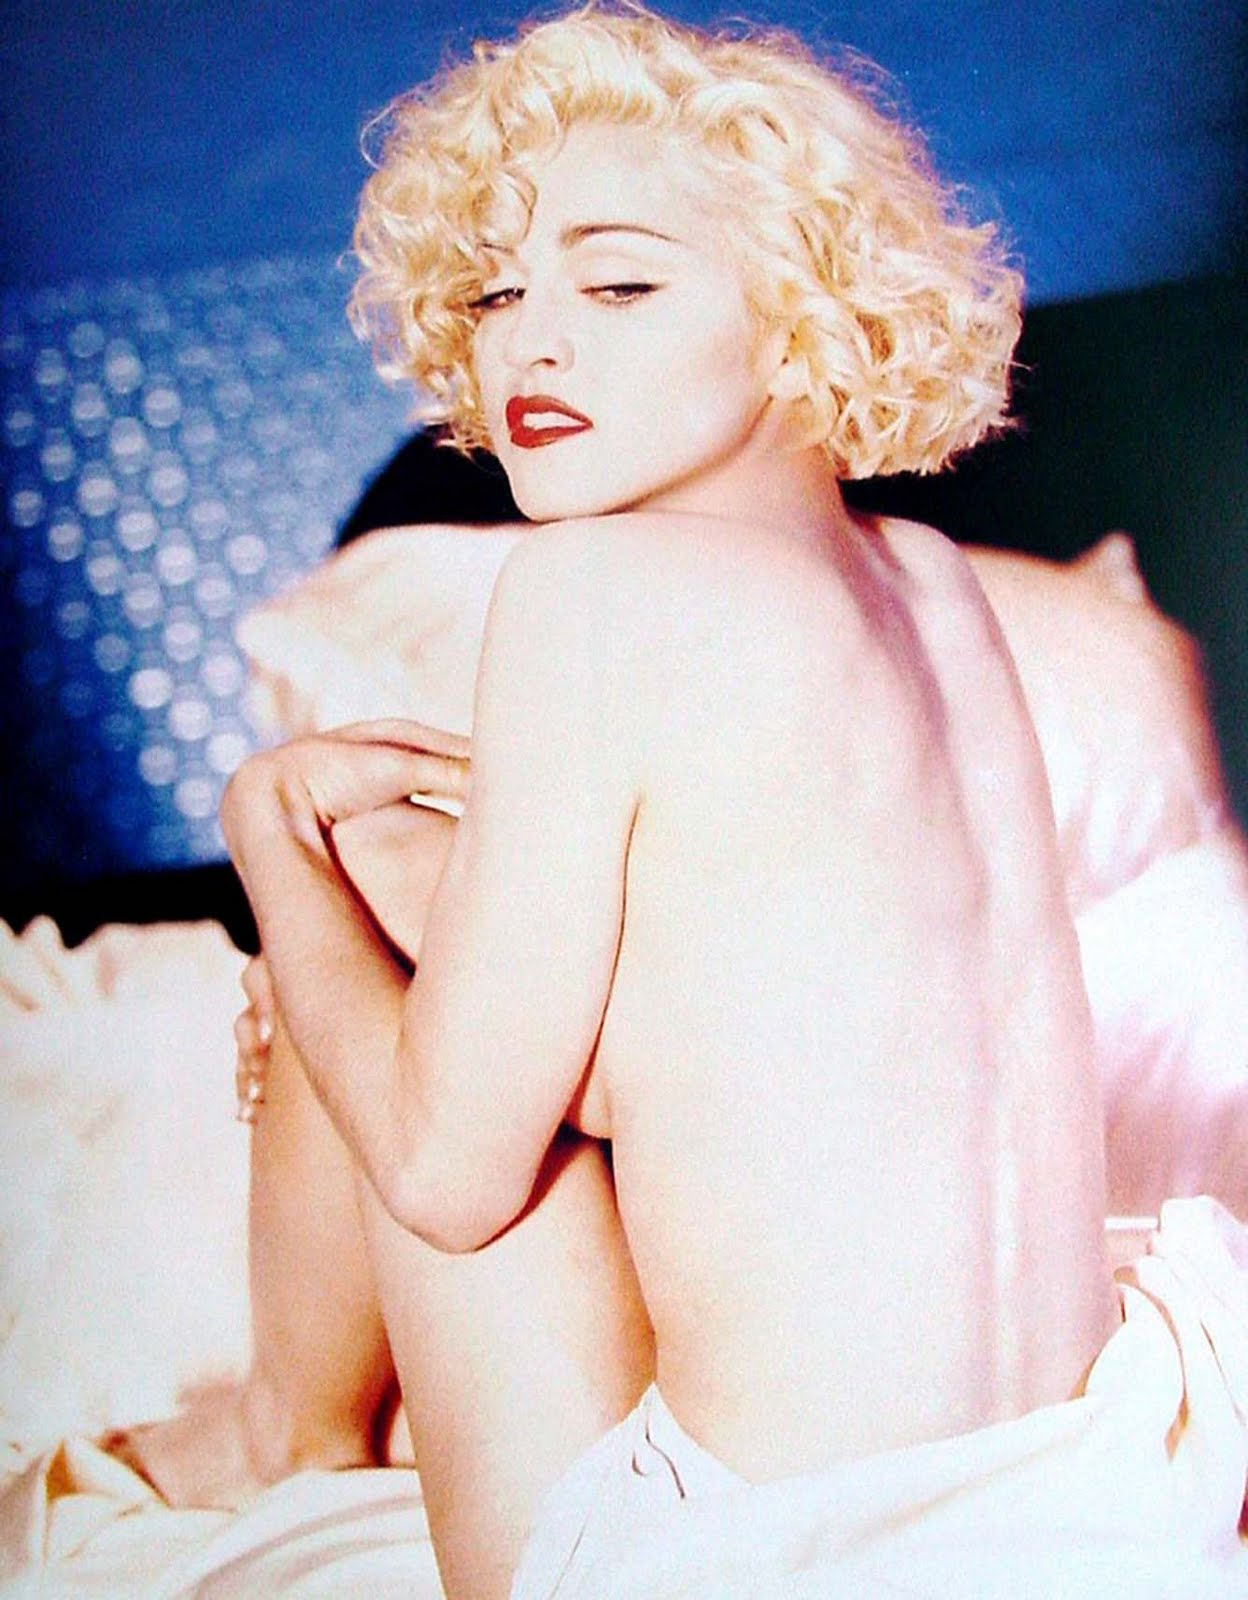 madonna express yourself video